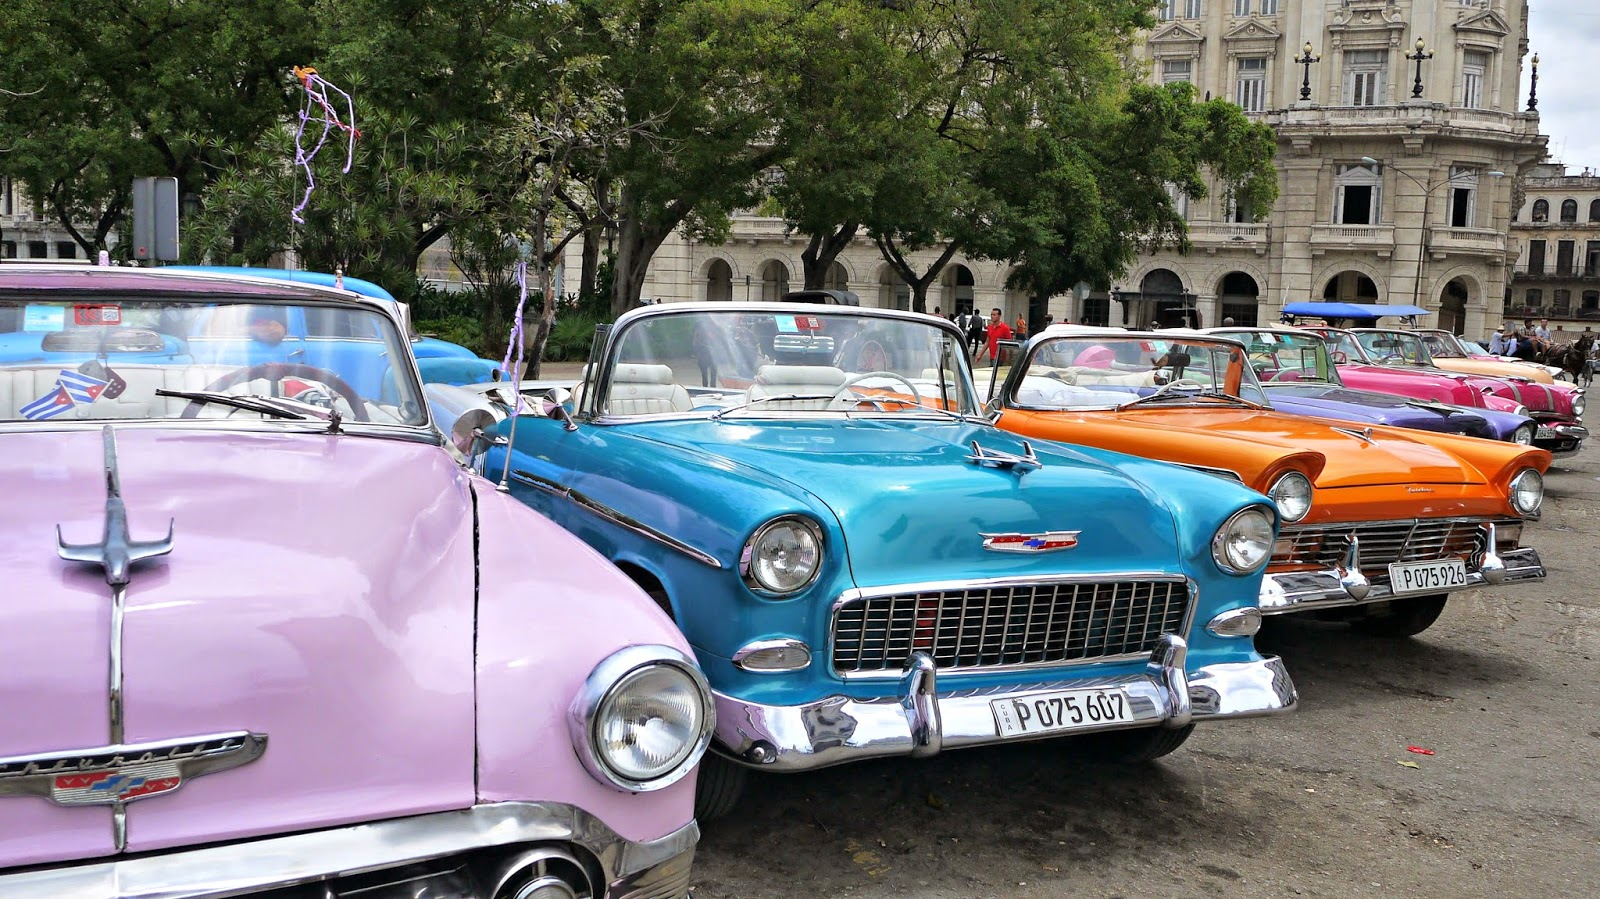 Colourful classic cars in Havana Cuba